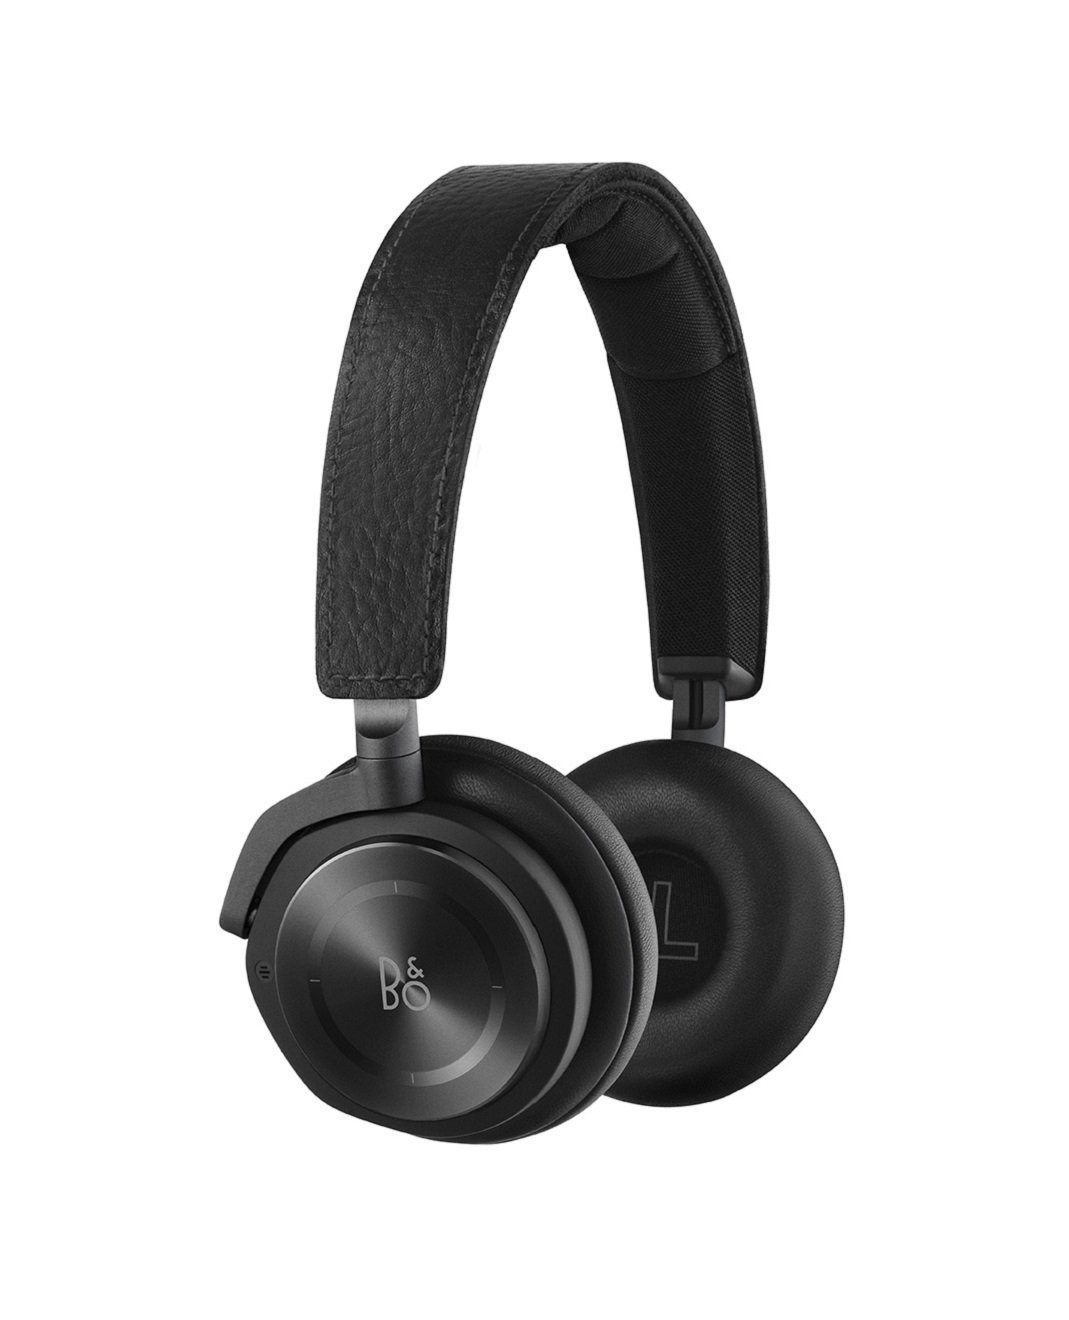 Best Bluetooth Headphones For Galaxy Note 8 Sammobile